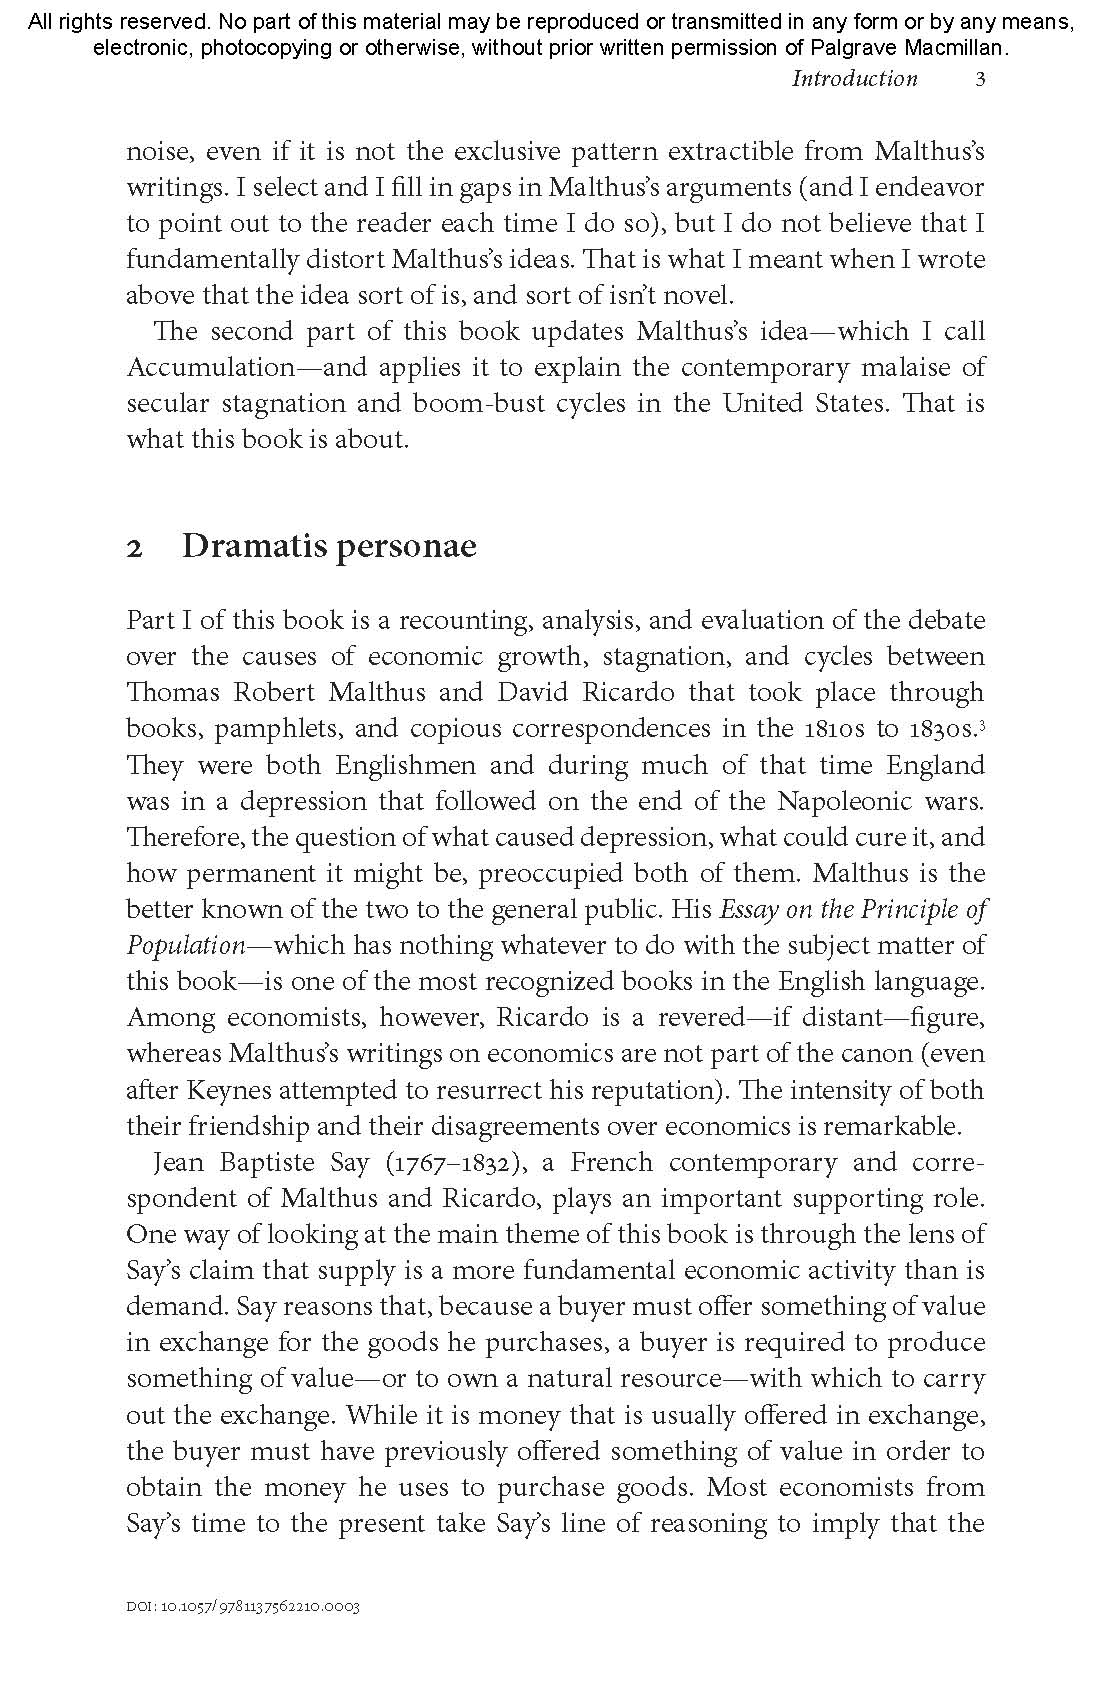 Pages from Accumulation and Secular Stagnation - pdf published book-2_Page_09.jpg